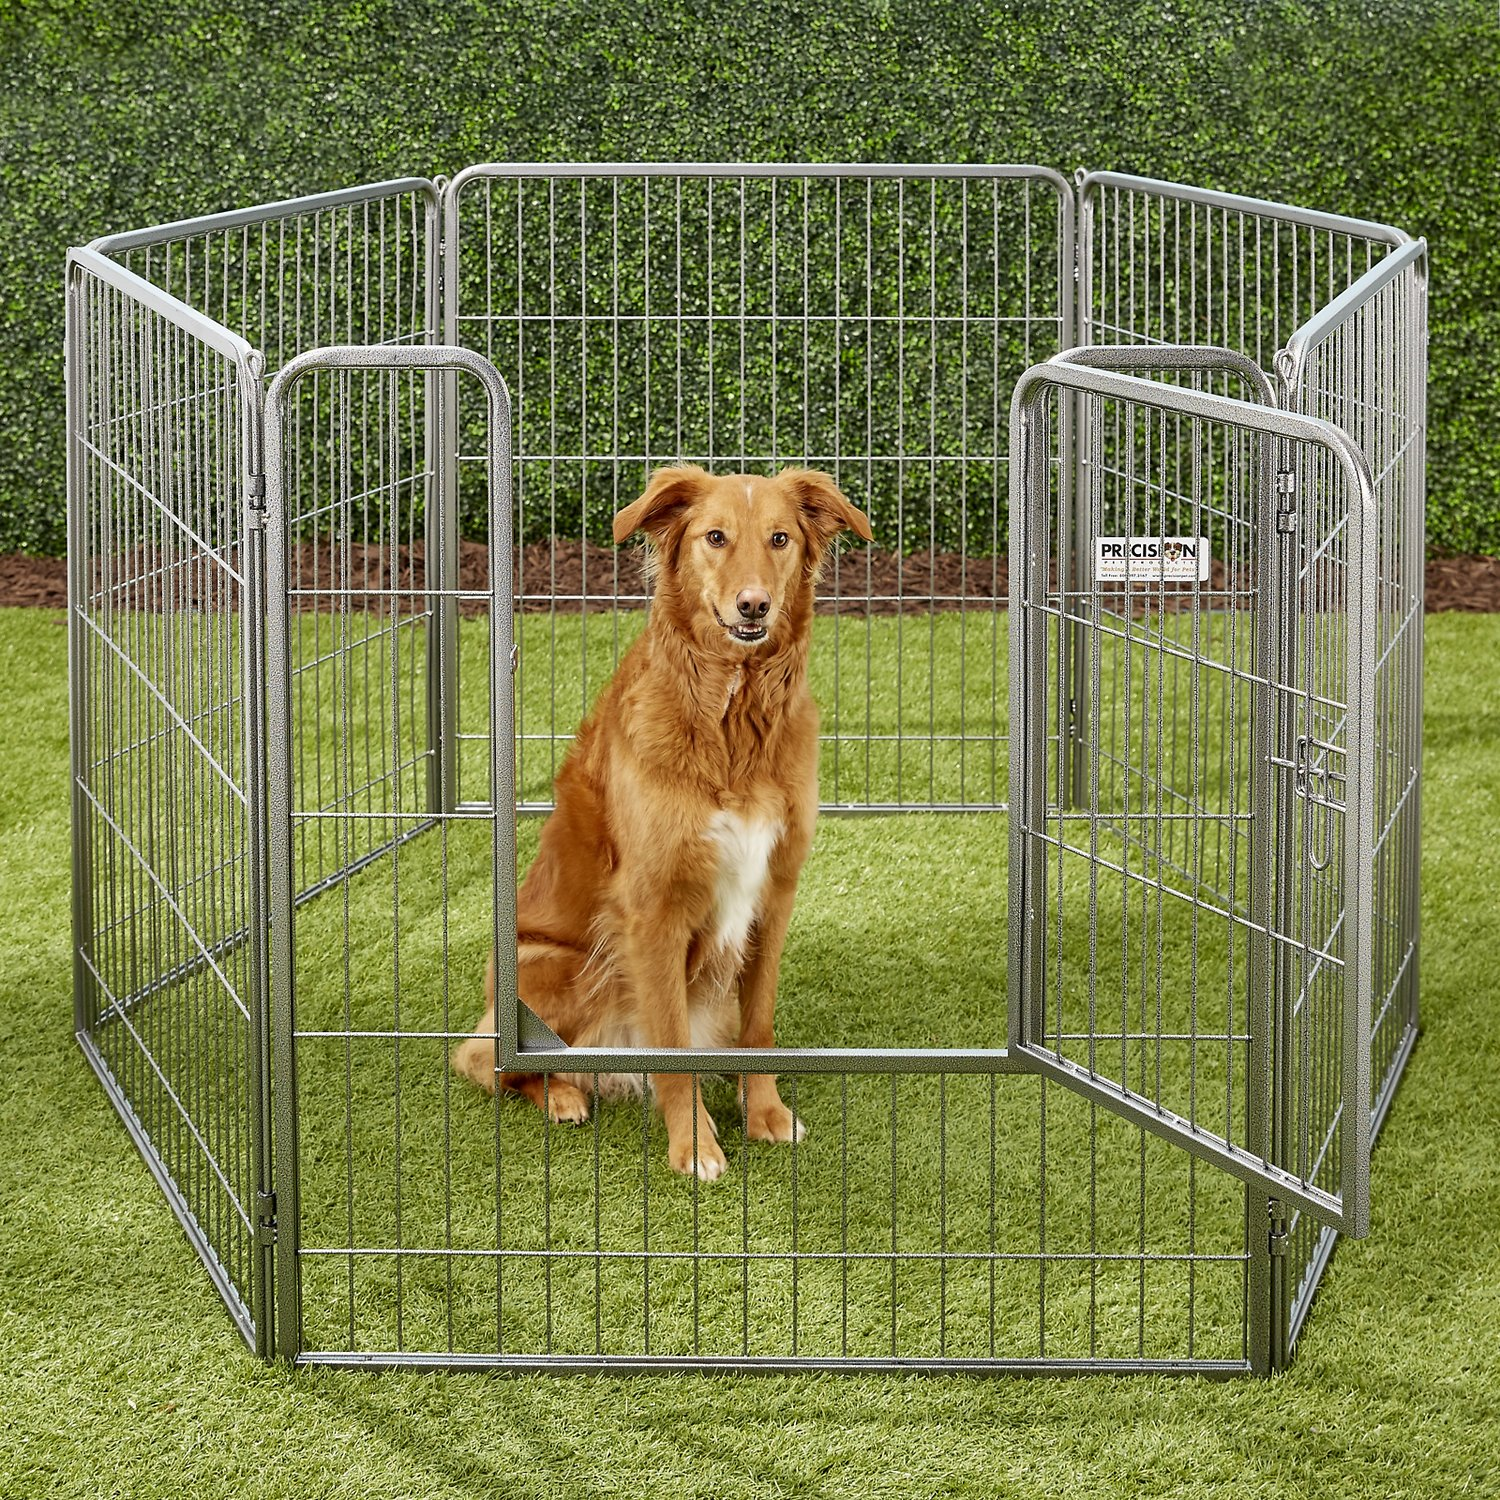 Precision Pet Products Courtyard Kennel Exercise Pen, 38-in - Chewy.com